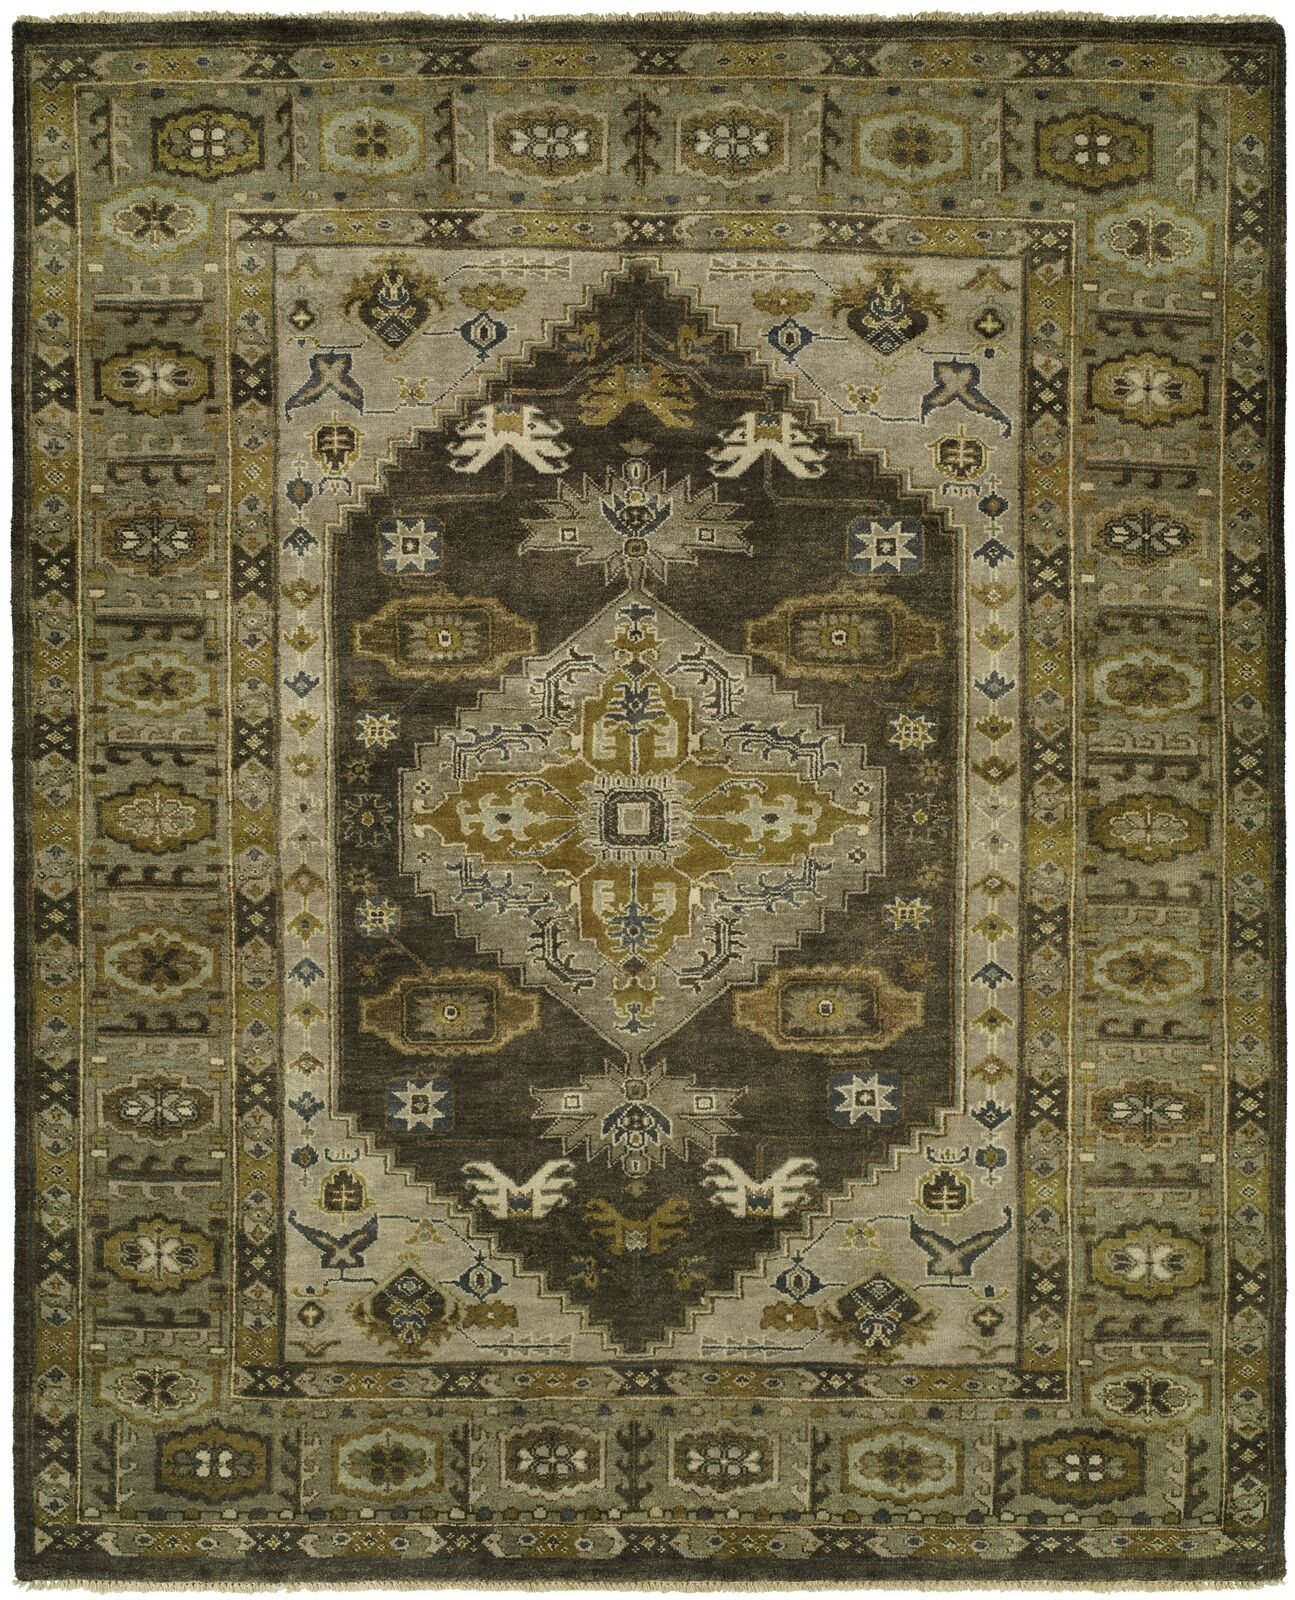 McCandlish Hand Knotted Wool Gray/Olive Area Rug Rug Size: Rectangle 3' x 5'